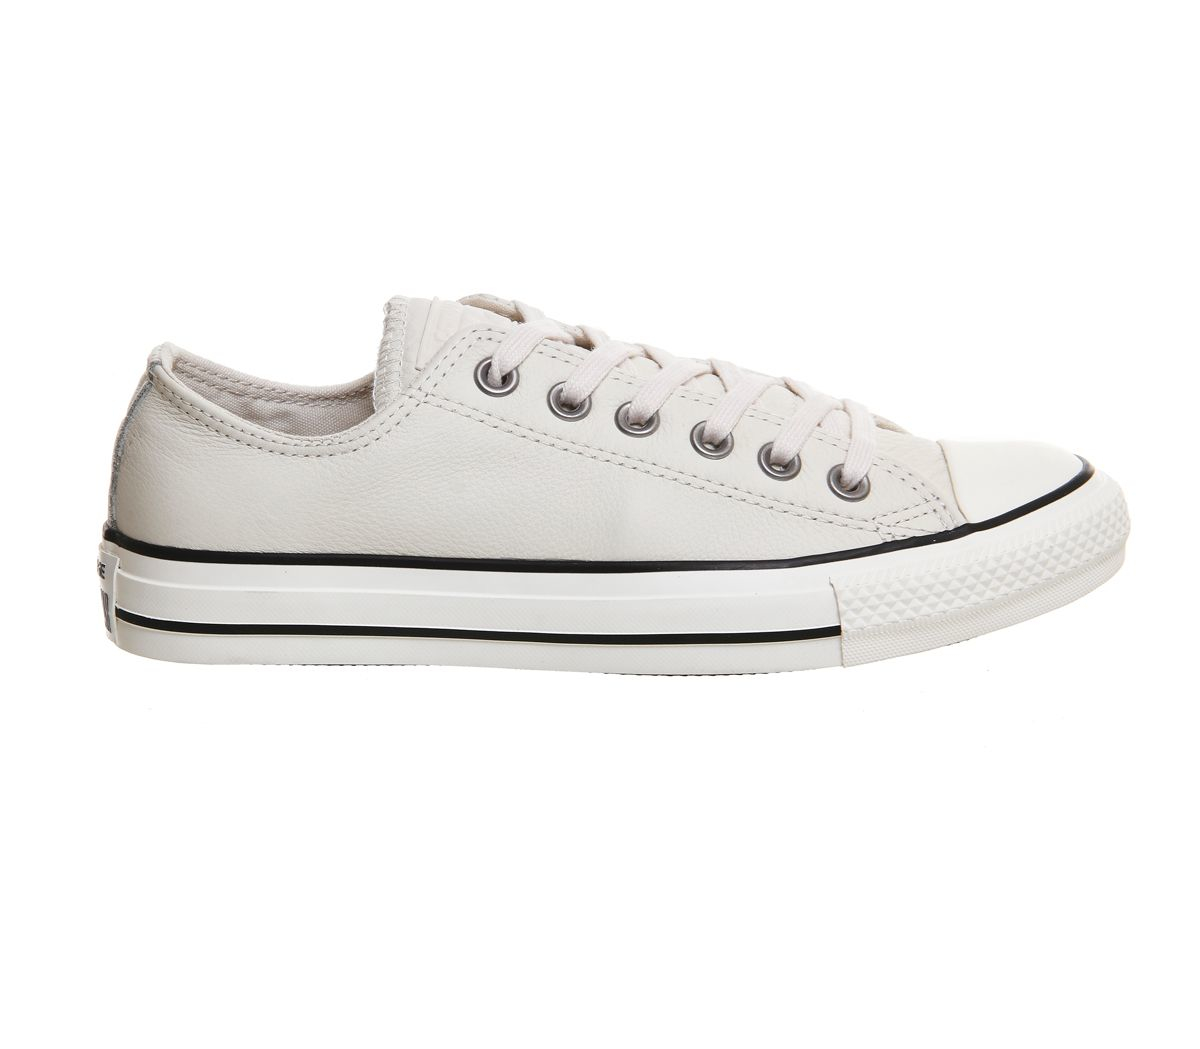 converse all star low leather trainers in white lyst